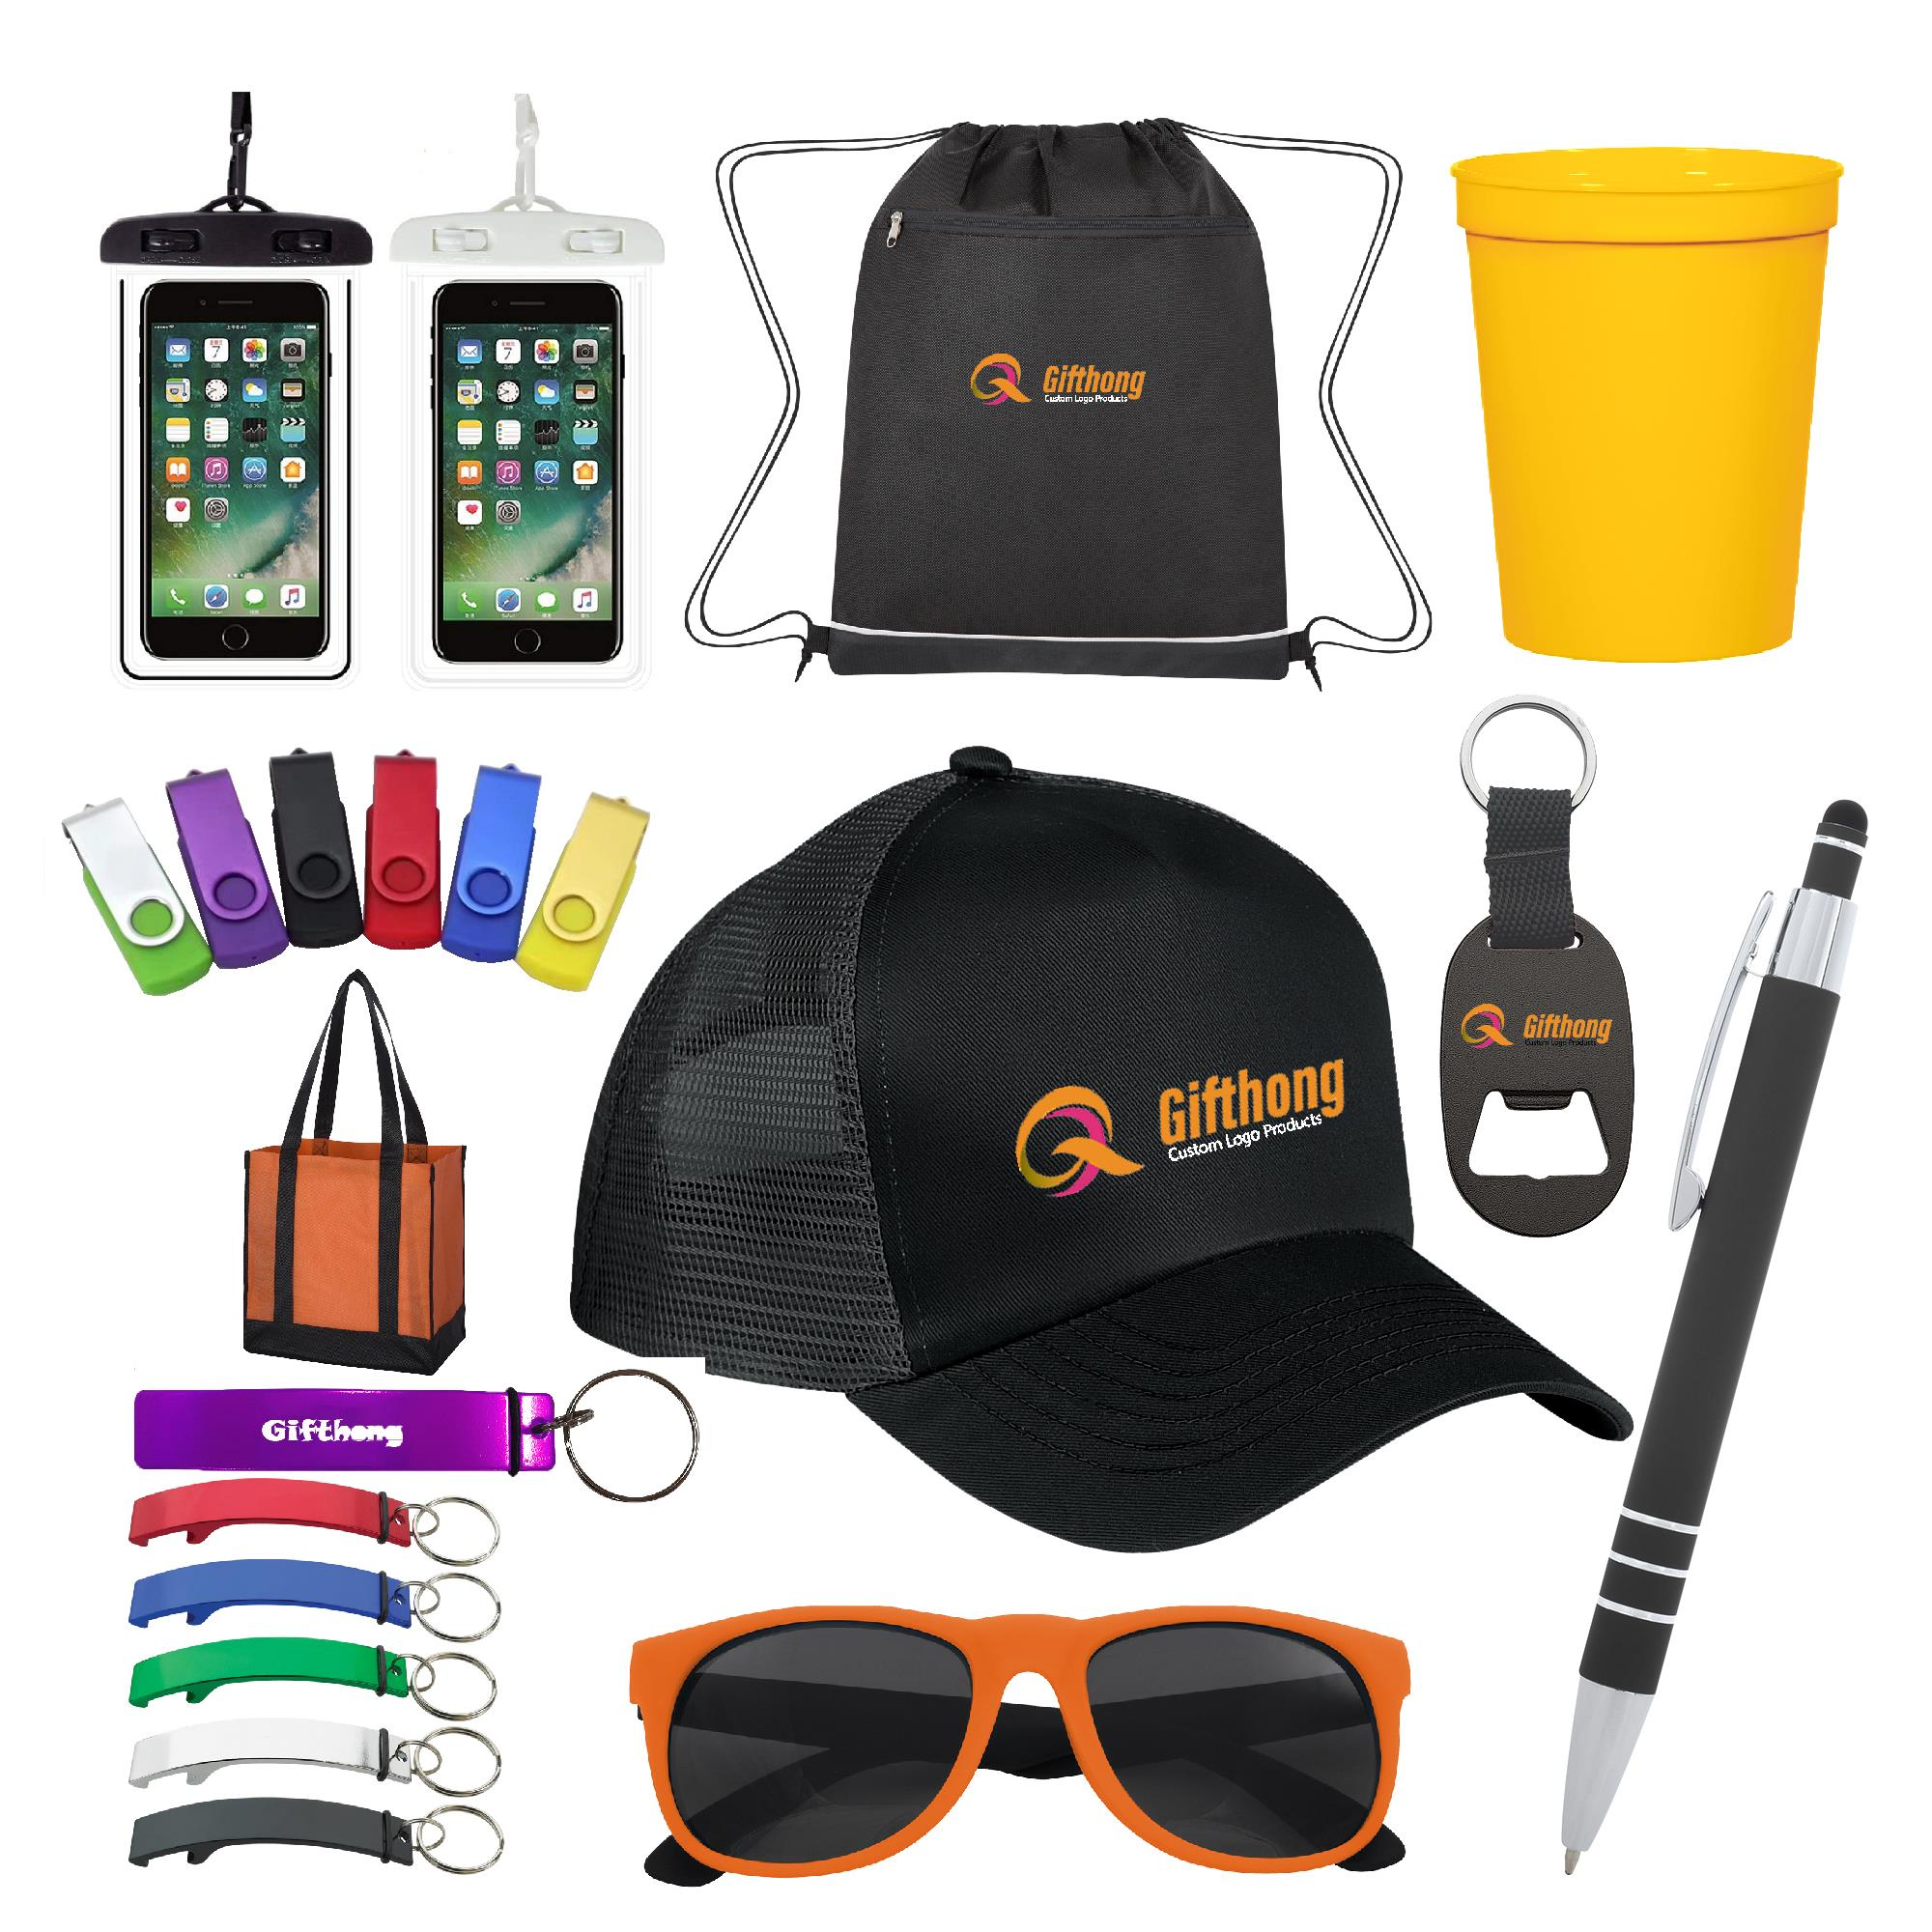 Custom Brand Promotional Gift Sets Items business promotional product